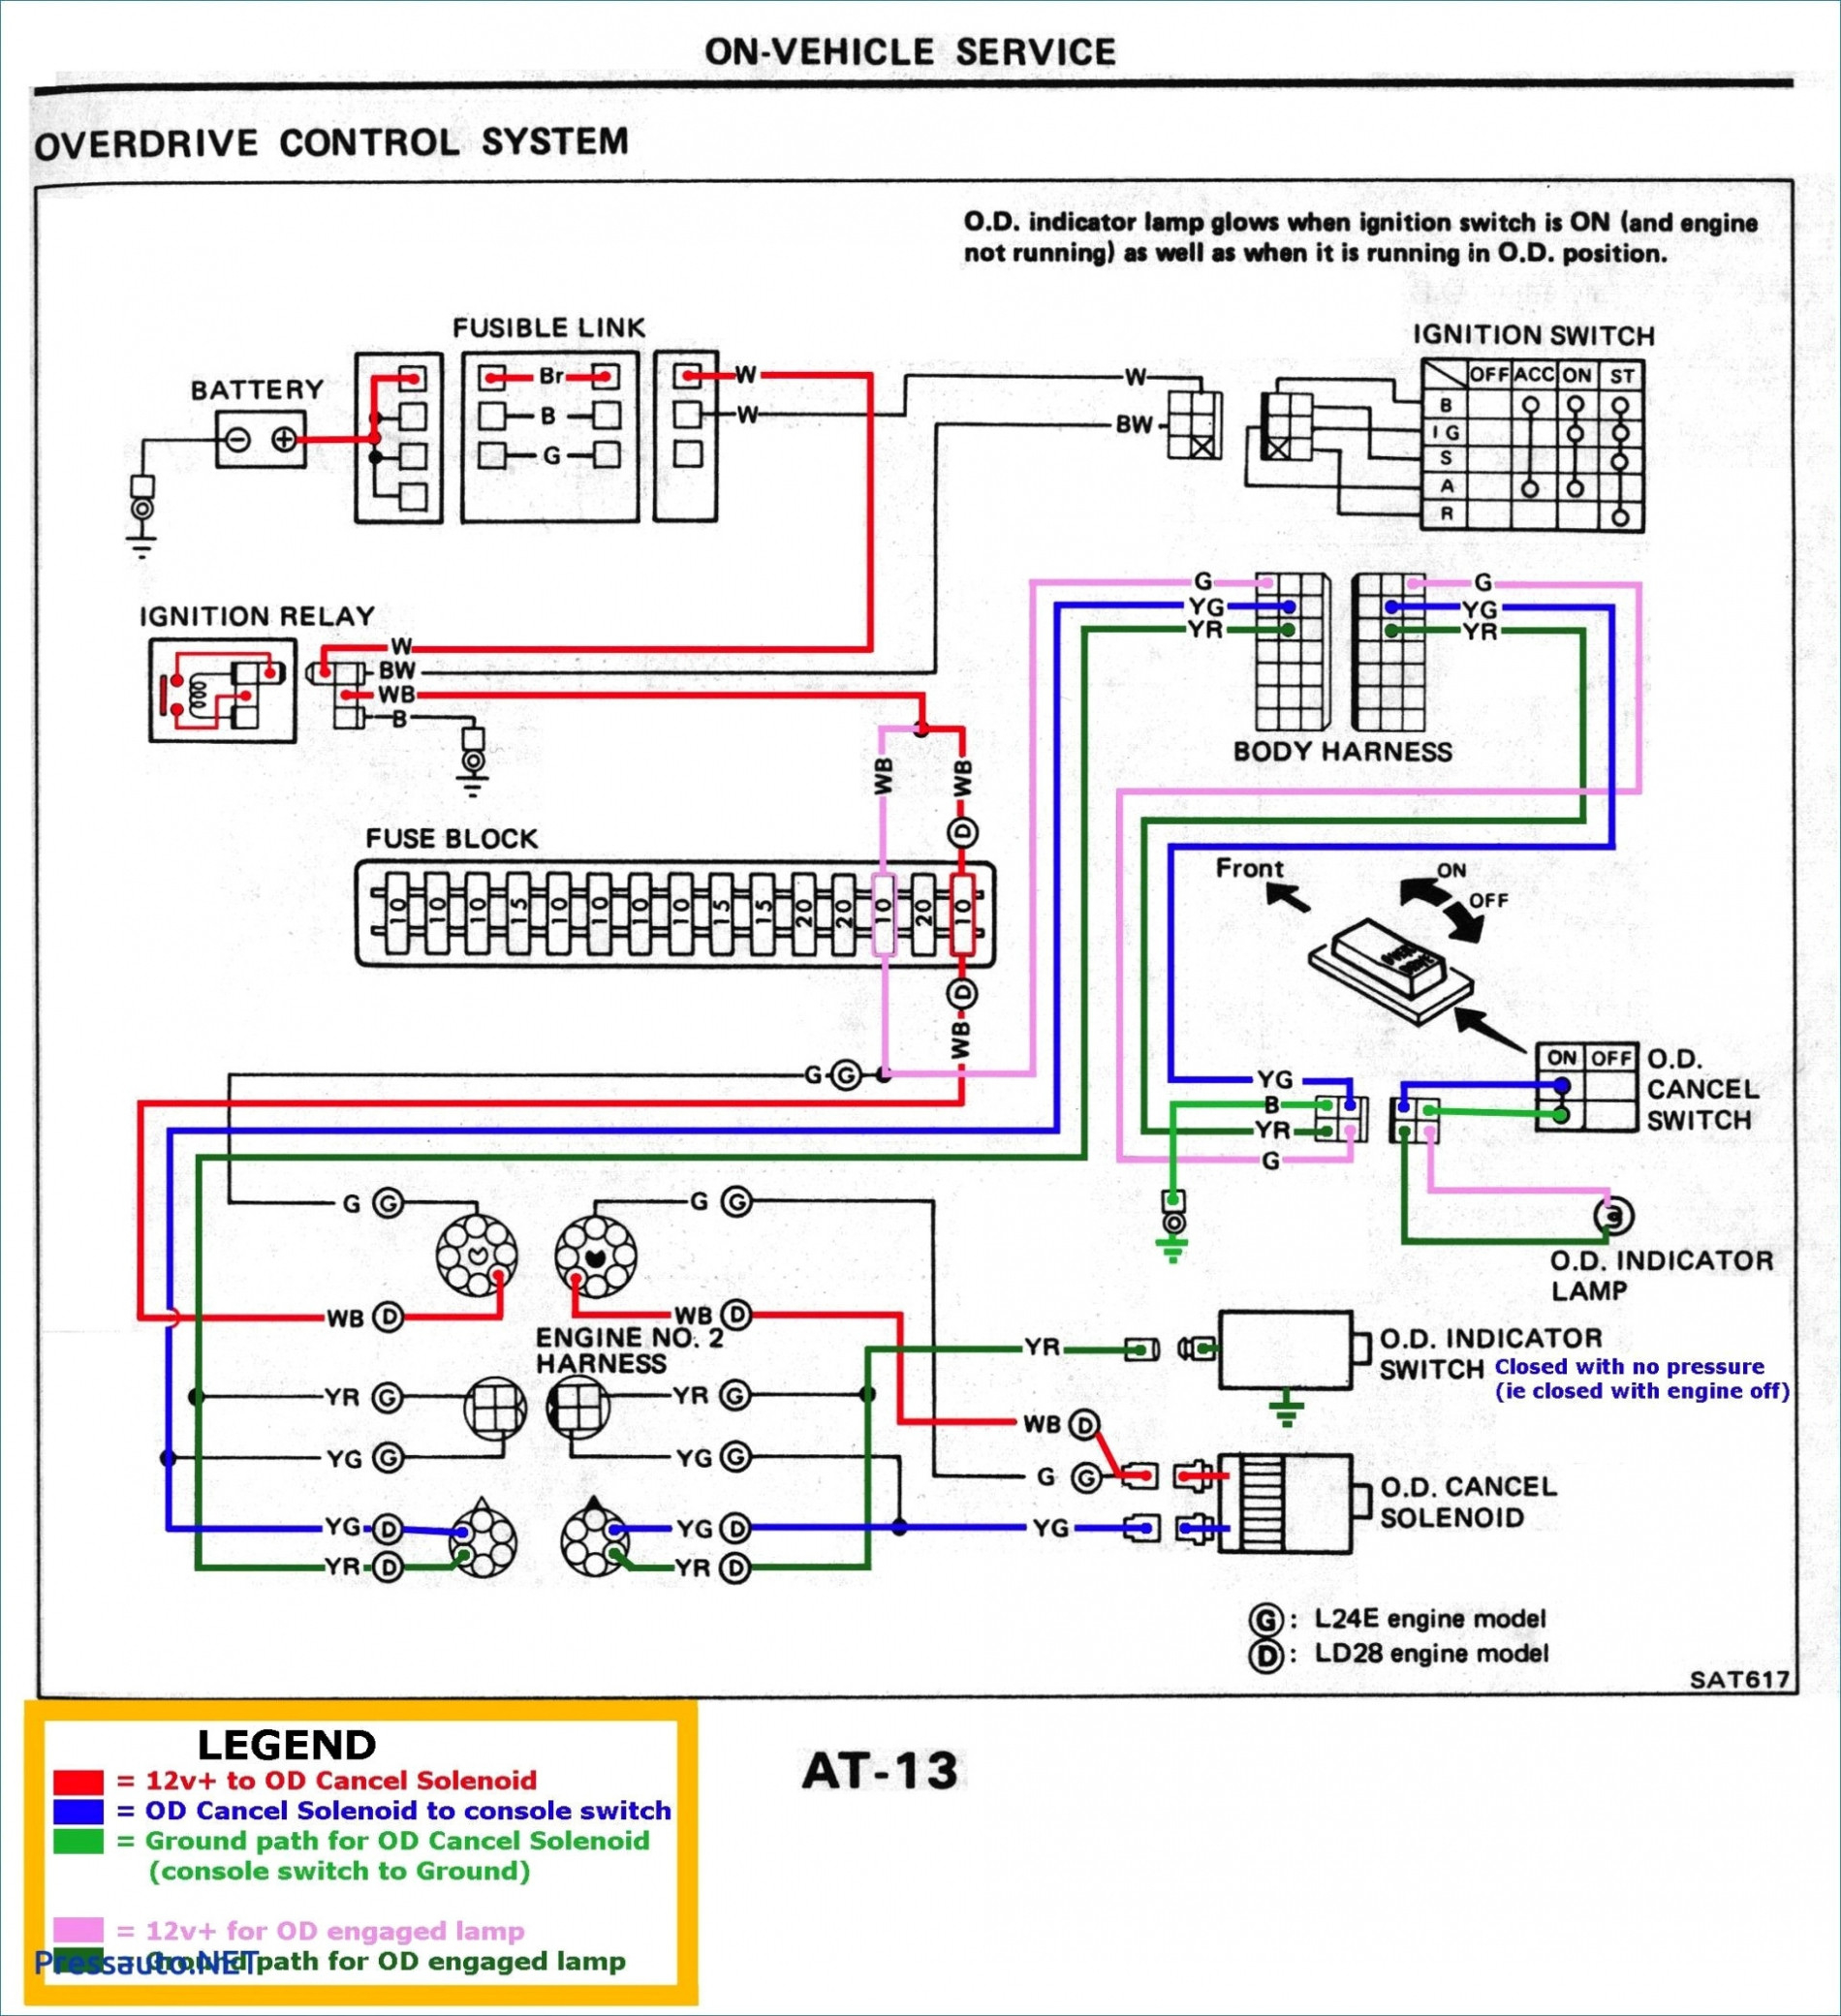 4 Prong Generator Plug Wiring Diagram Fresh 7 Prong Wiring Diagram - 4 Prong Generator Plug Wiring Diagram